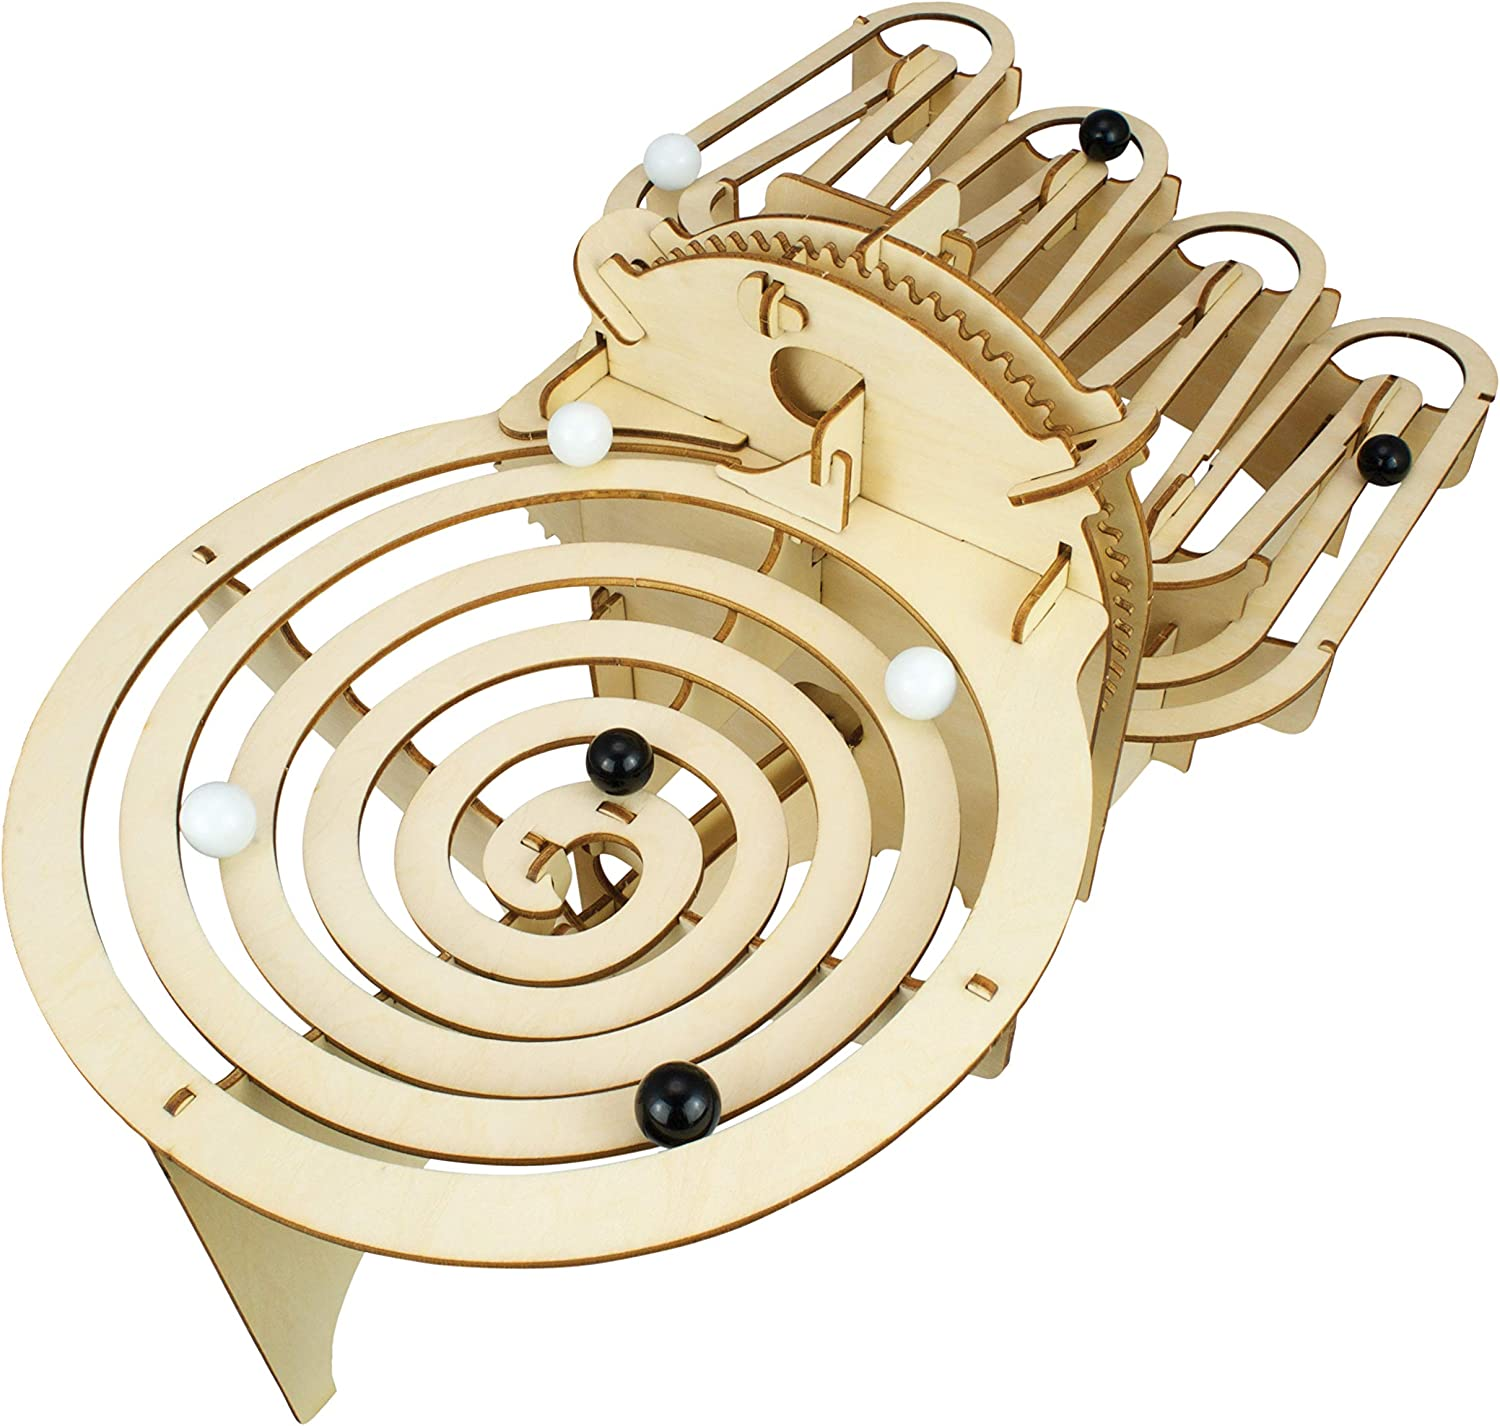 Cheatwell Games Engenius Contraptions Marble Run Flat Pack Perpetual Motion